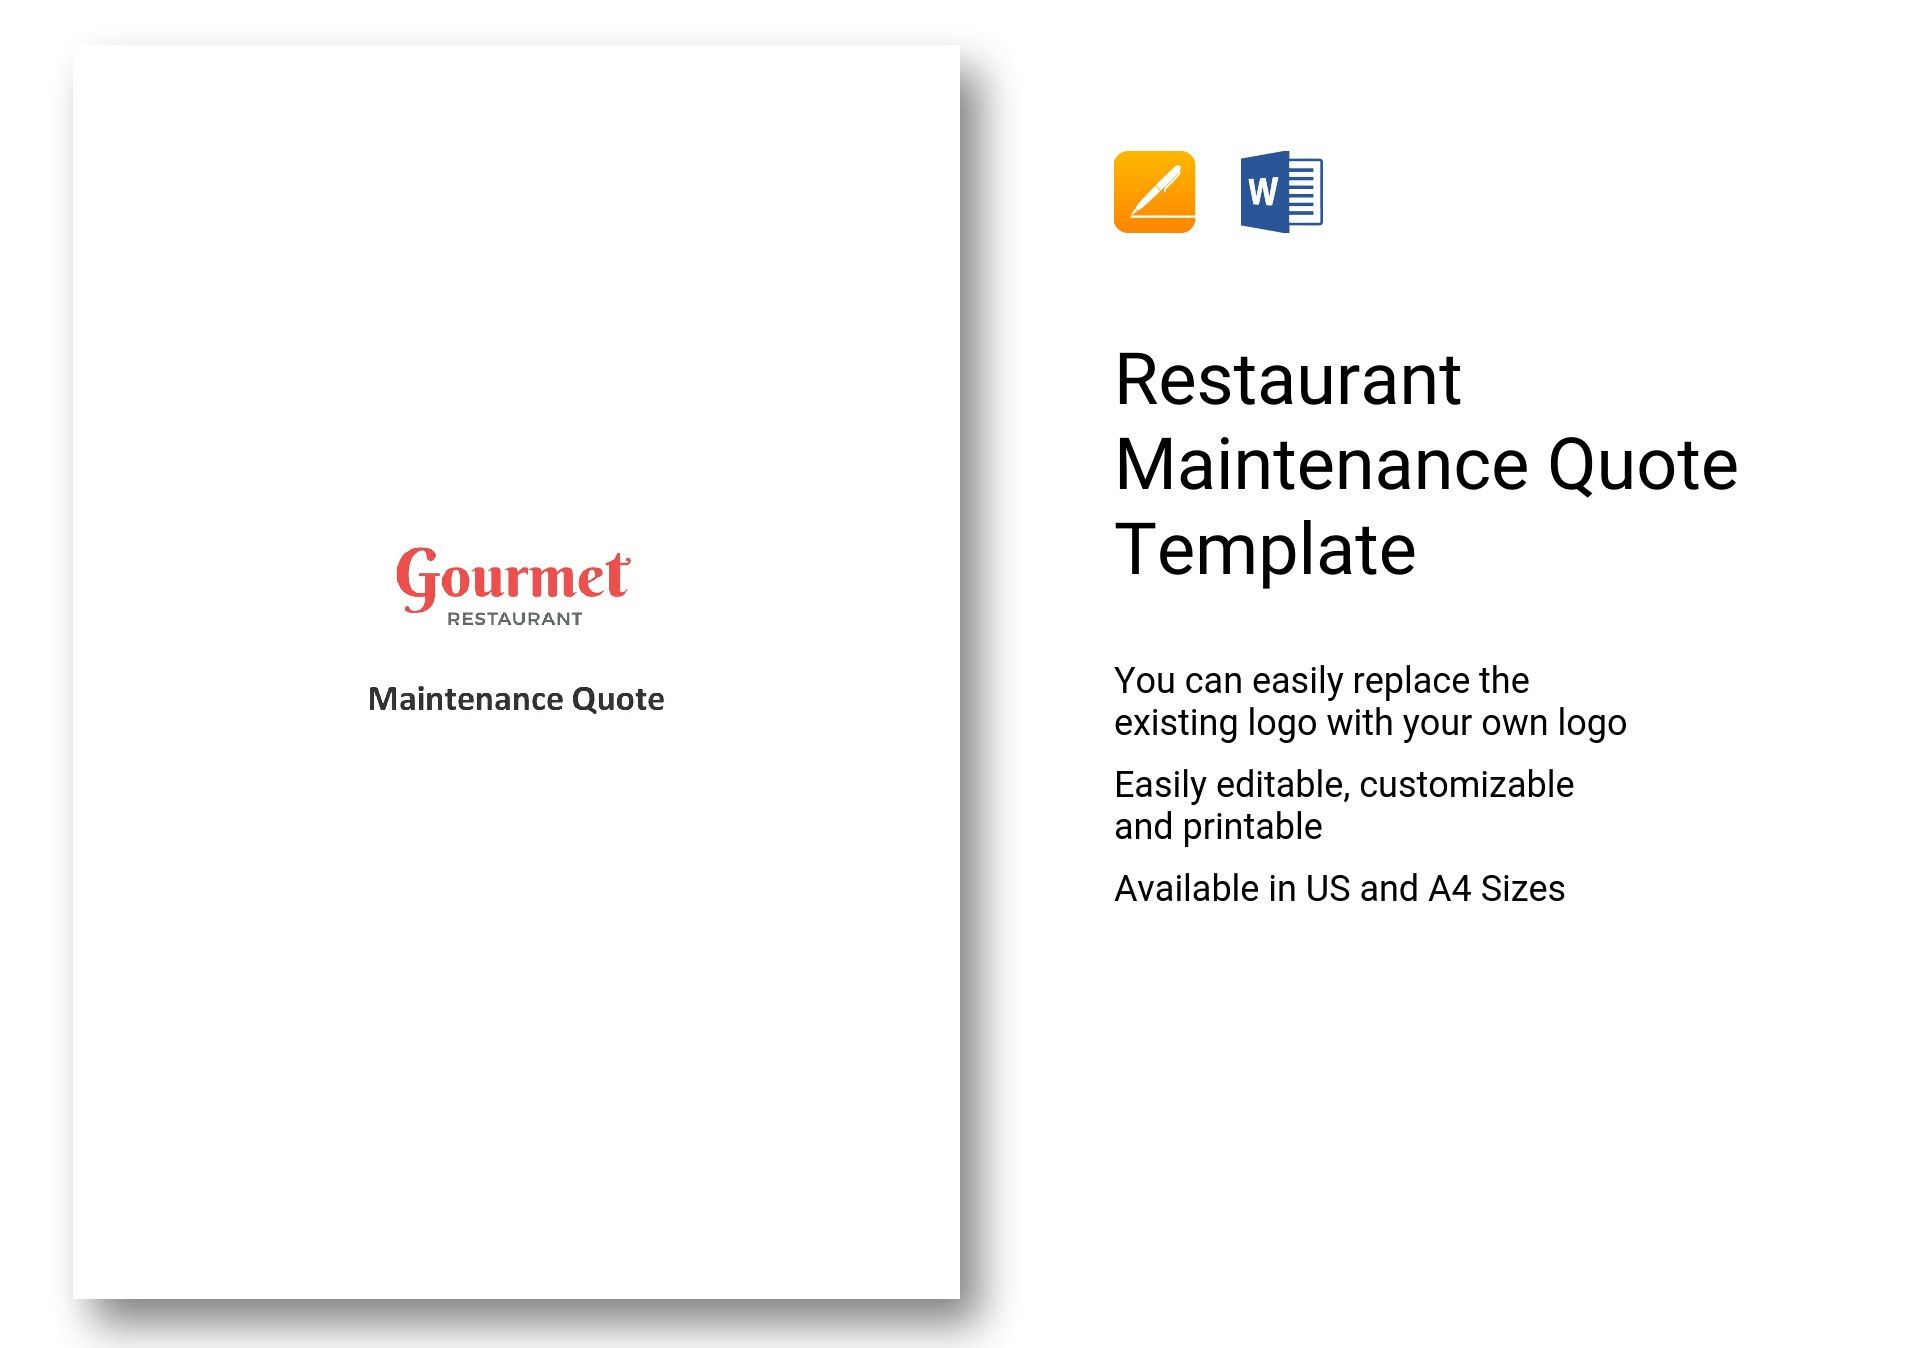 Restaurant Maintenance Quote